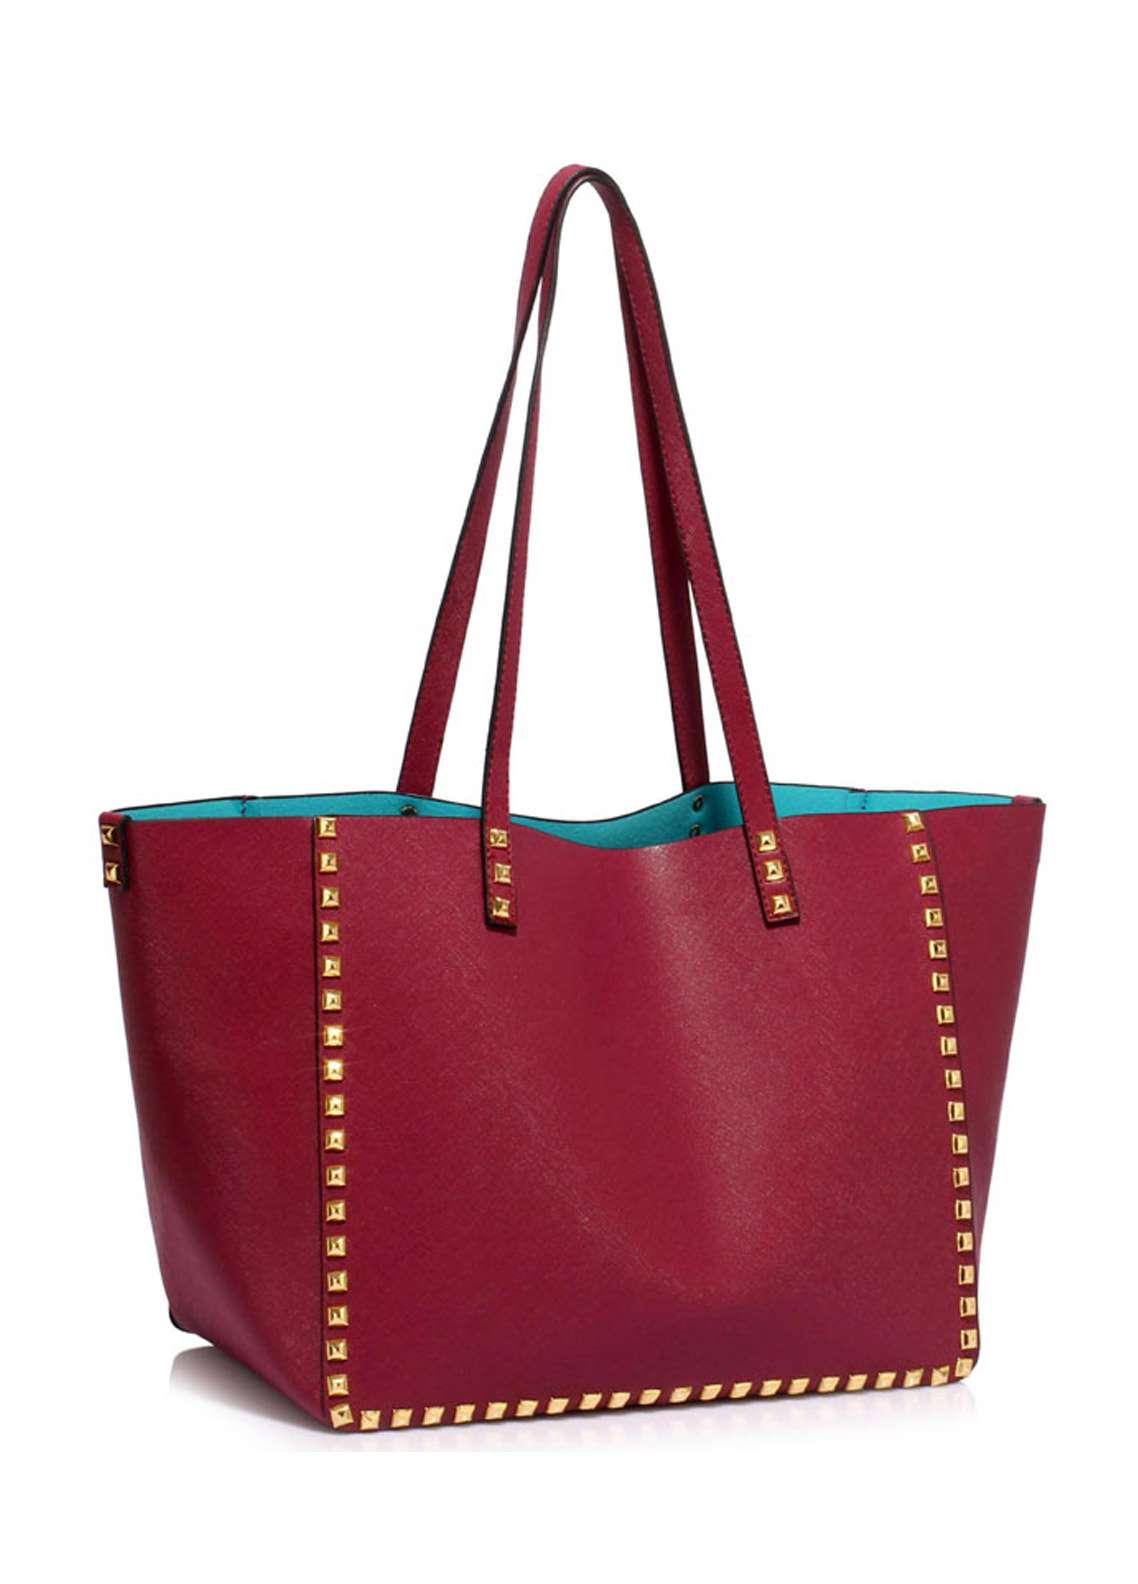 Leesun London Faux Leather Tote Bags  for Women  Burgundy